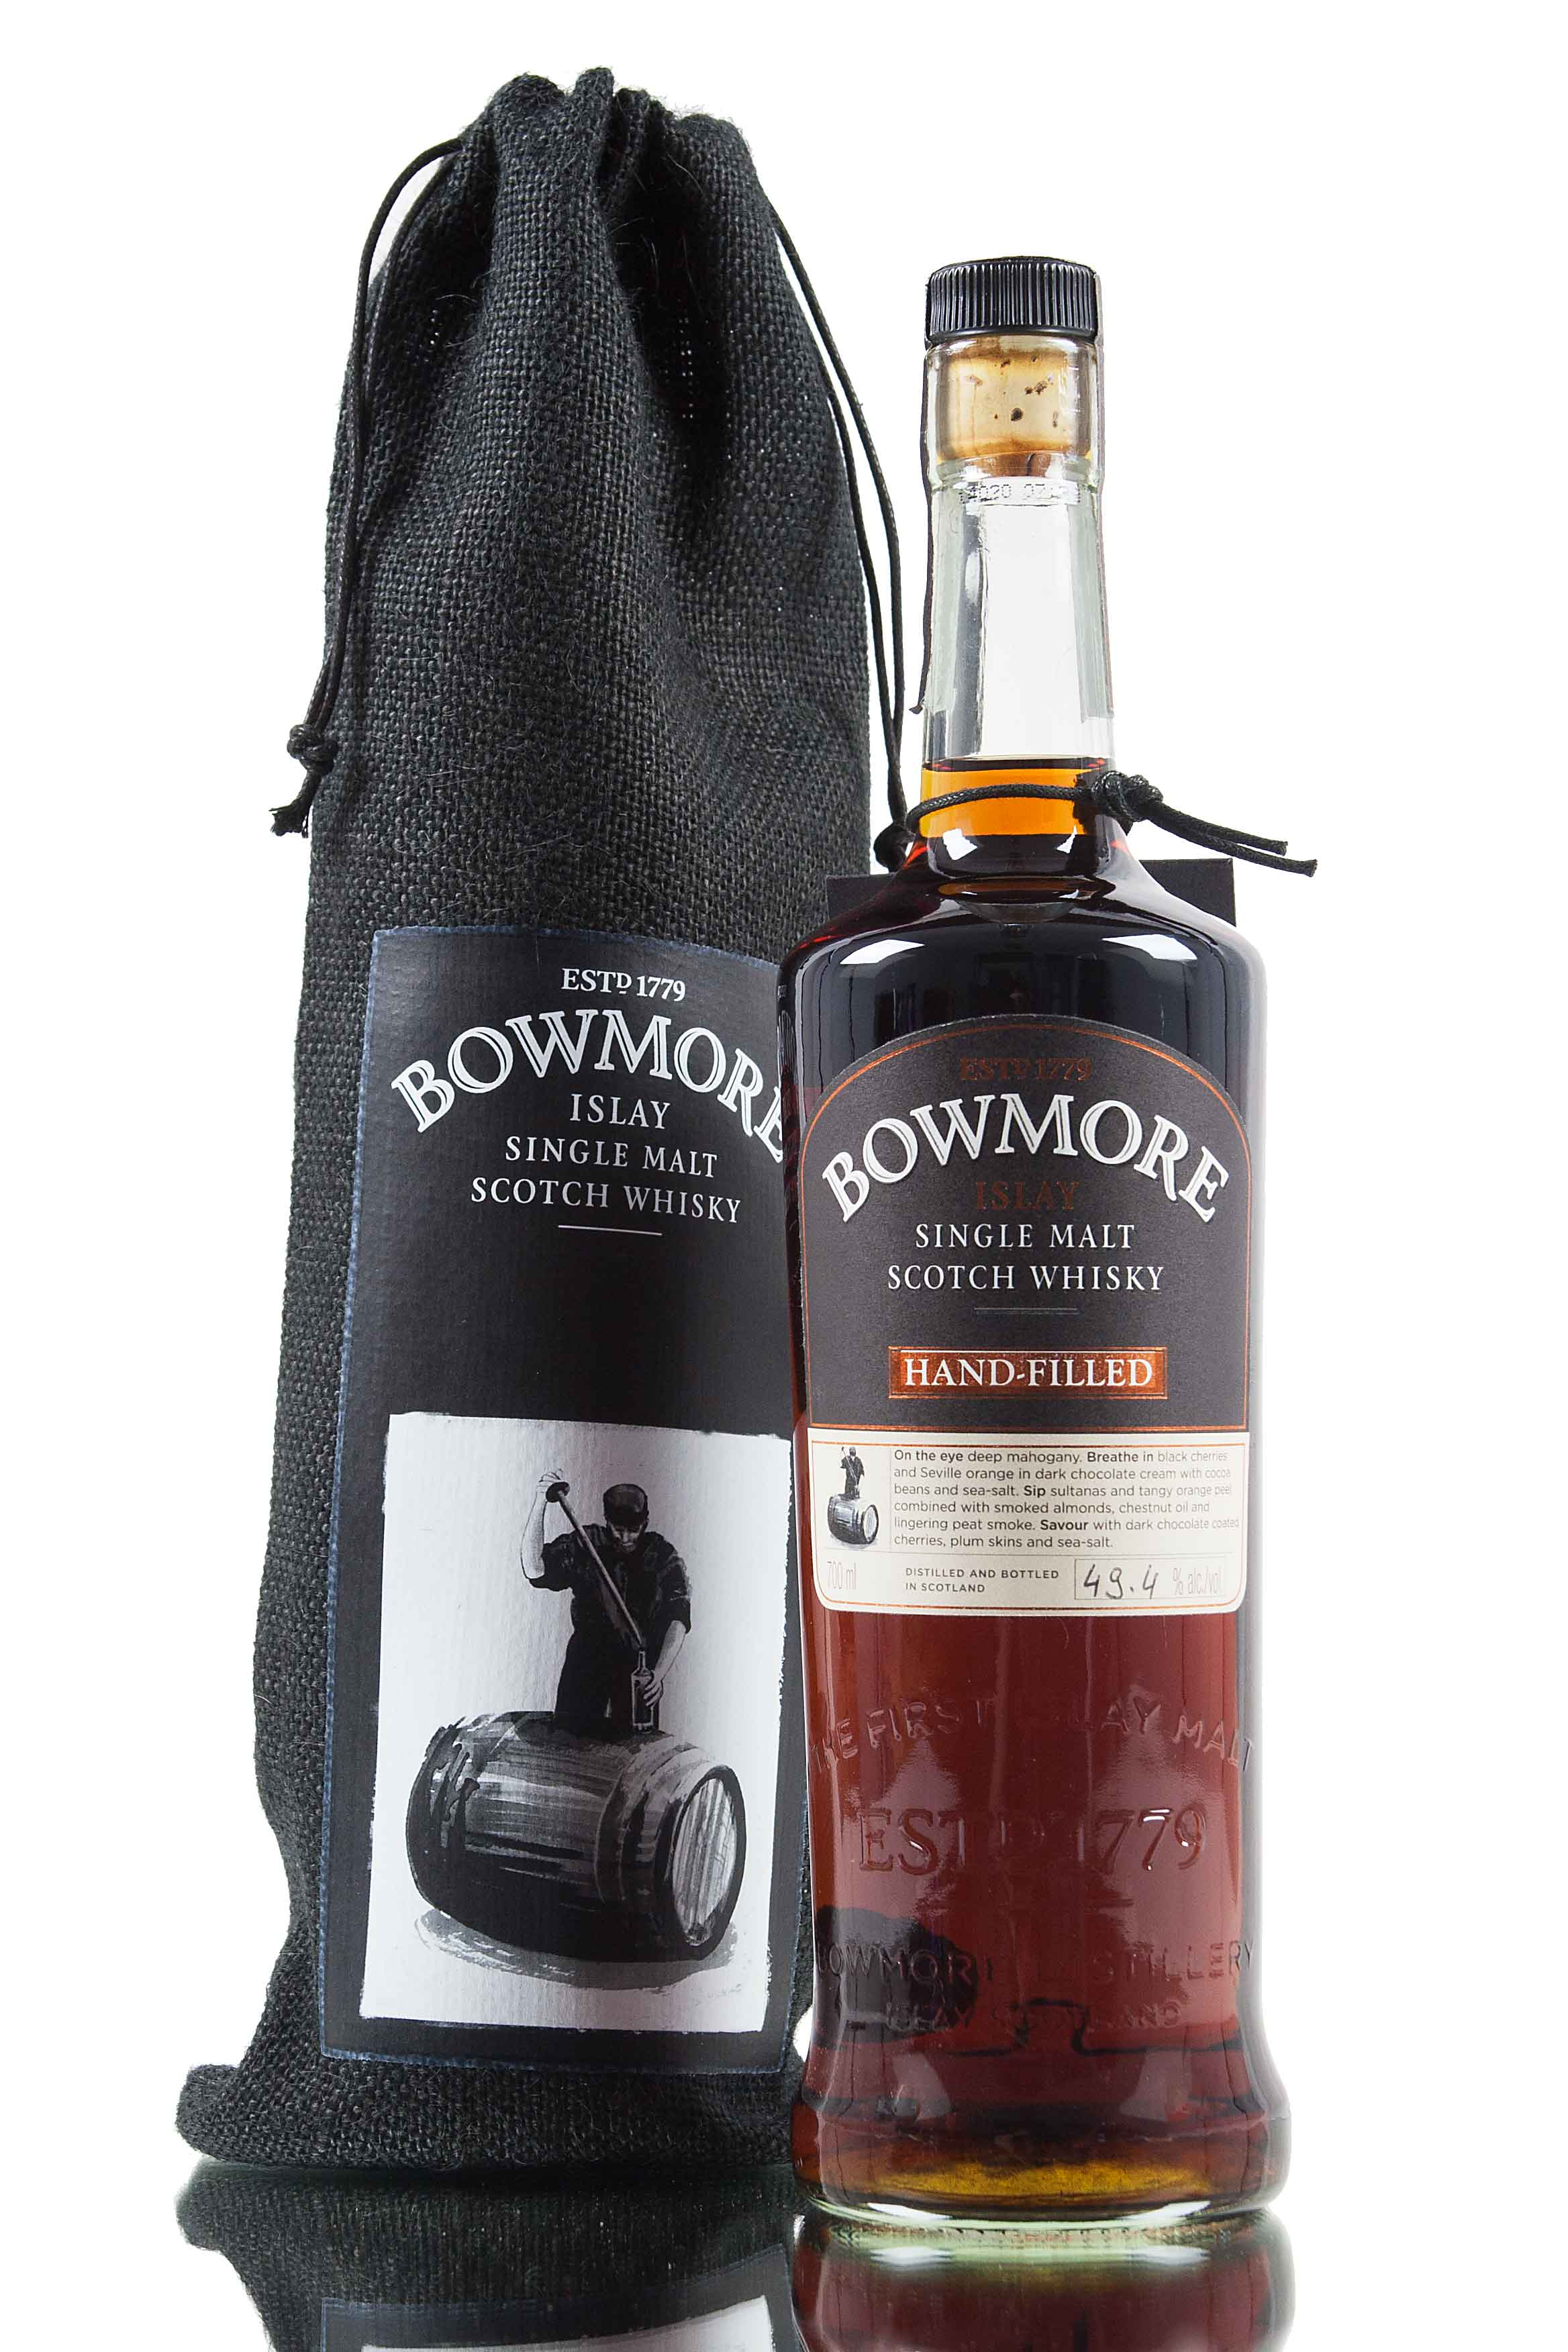 Bowmore Hand Filled 6th Edition - 1995 / Cask 1572